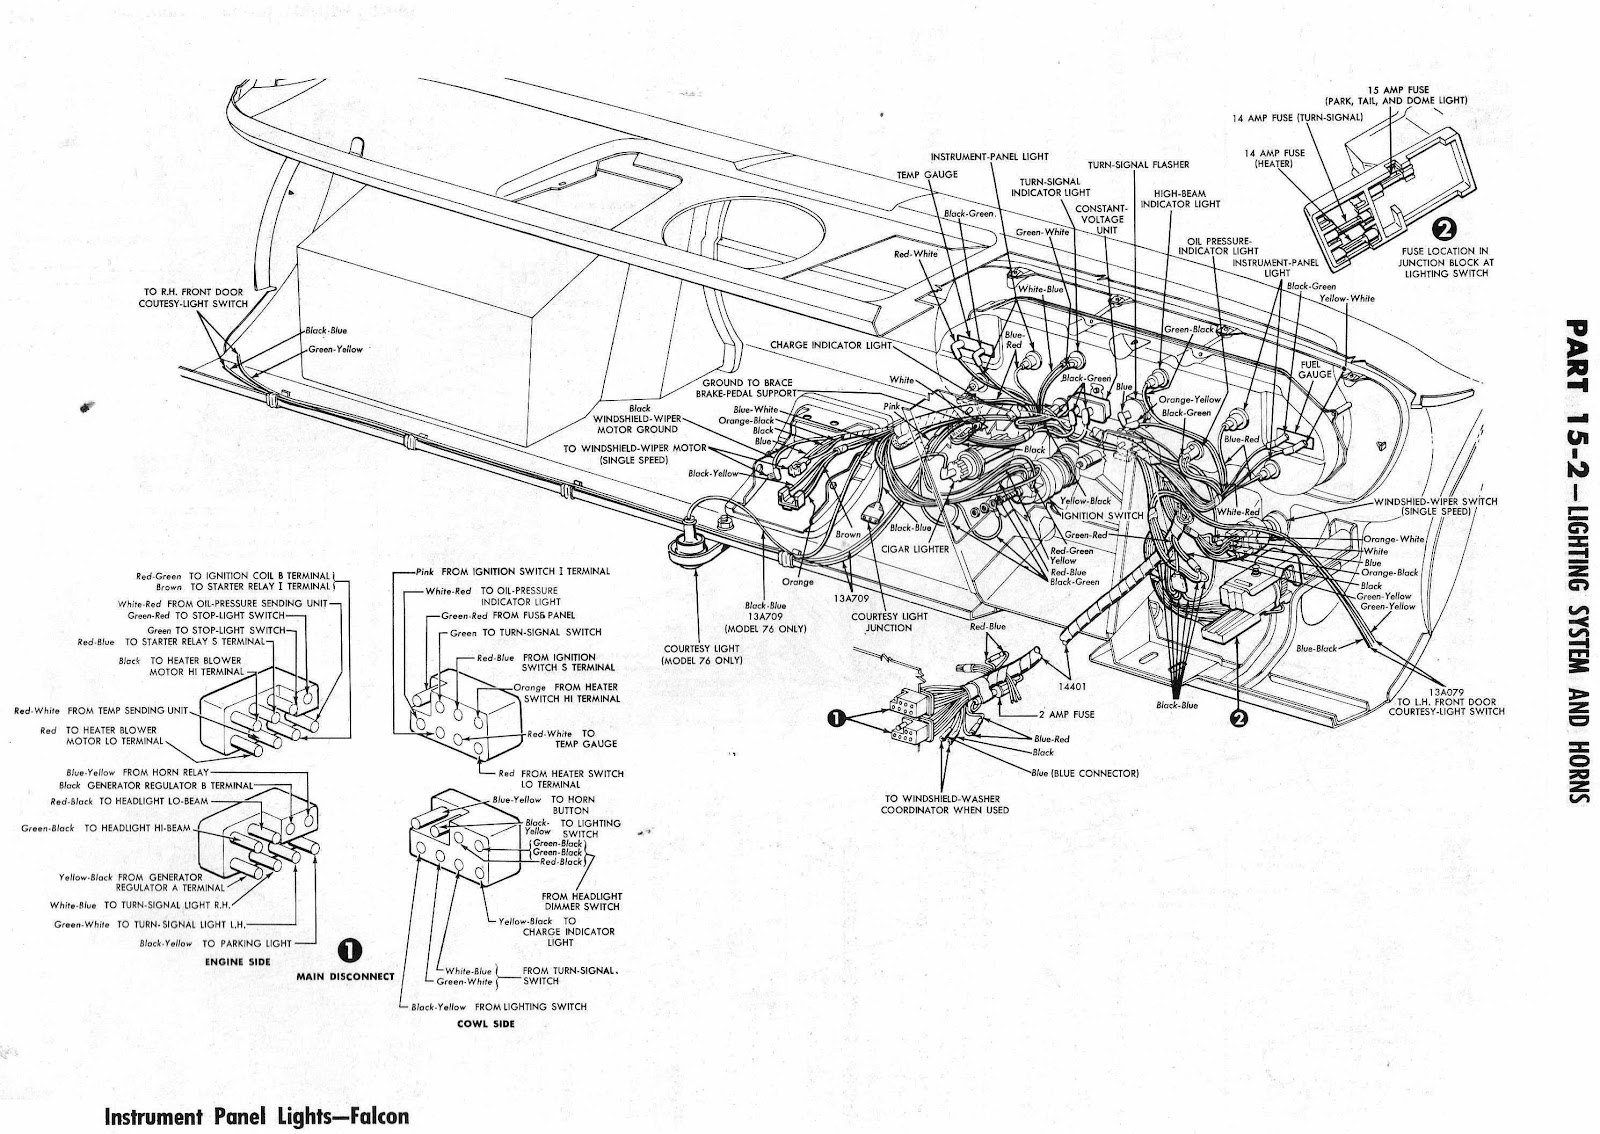 Ford+Falcon+1964+Lighting+System+and+Horns+Wiring+Diagram au falcon wiring diagram falcon guide \u2022 wiring diagrams j squared co ba falcon wiring diagram free download at gsmportal.co